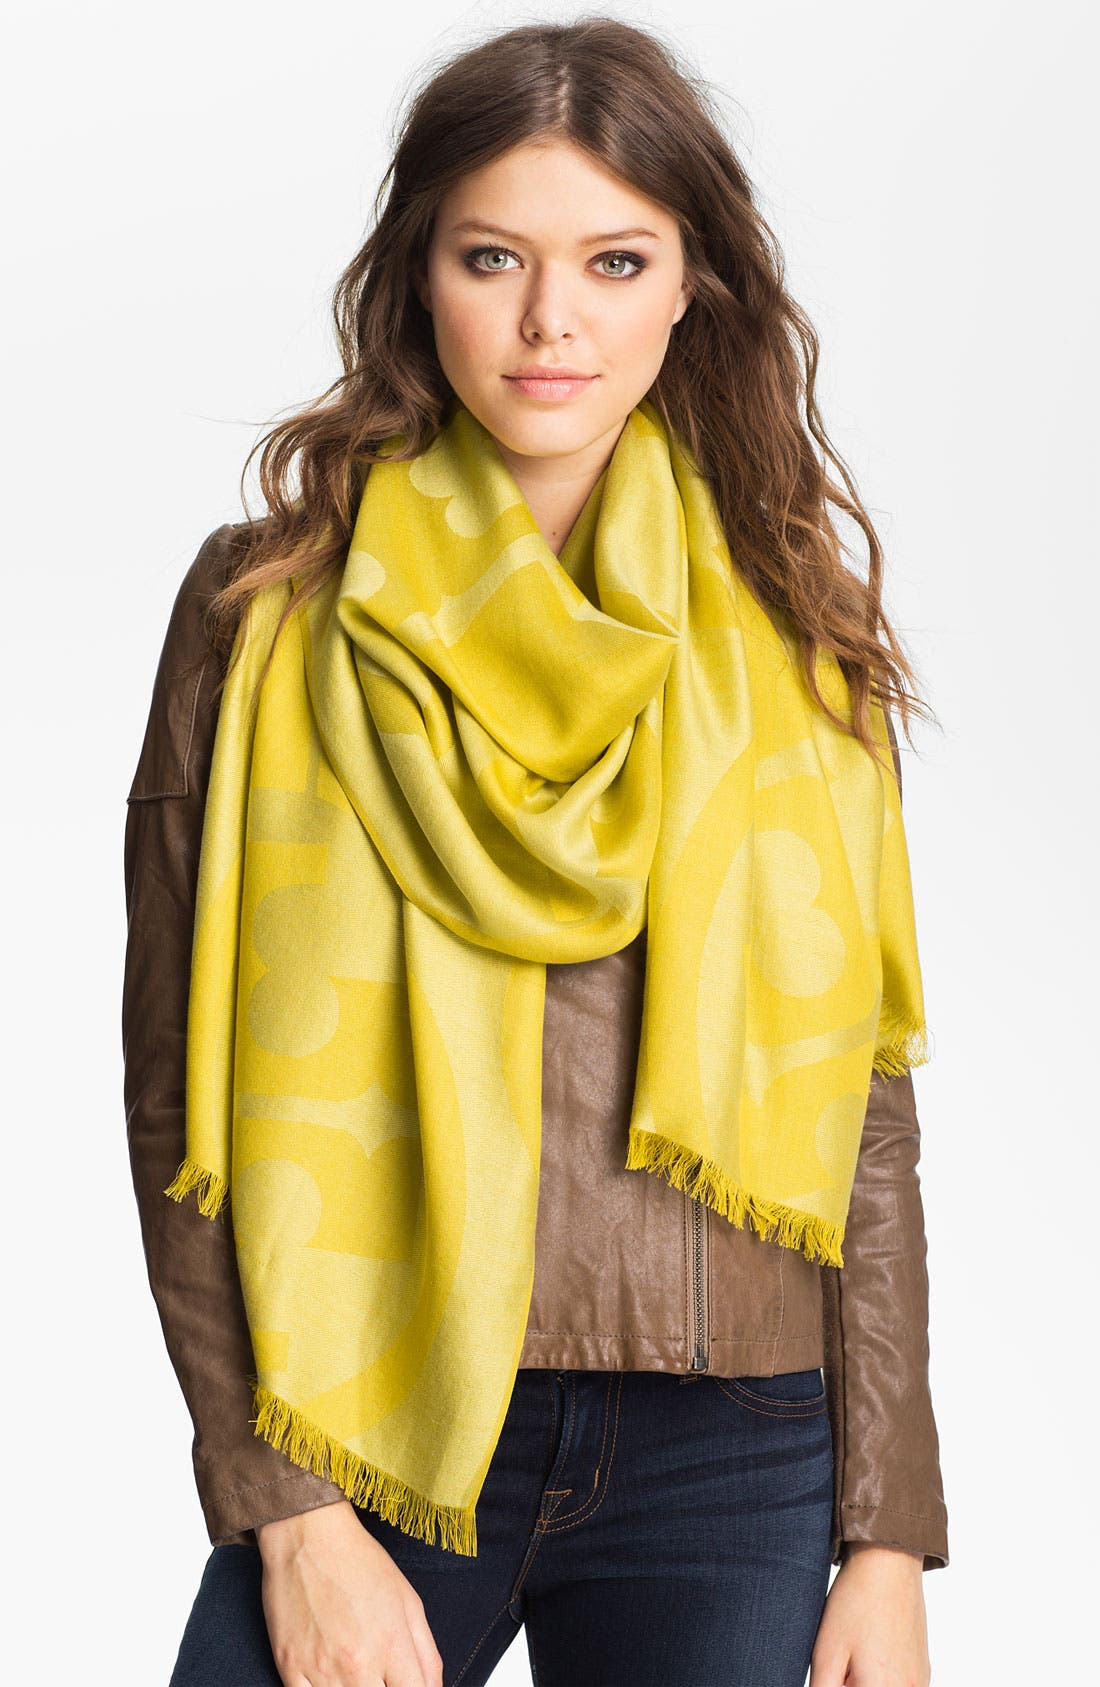 Alternate Image 1 Selected - Tory Burch 'T Belts' Jacquard Scarf